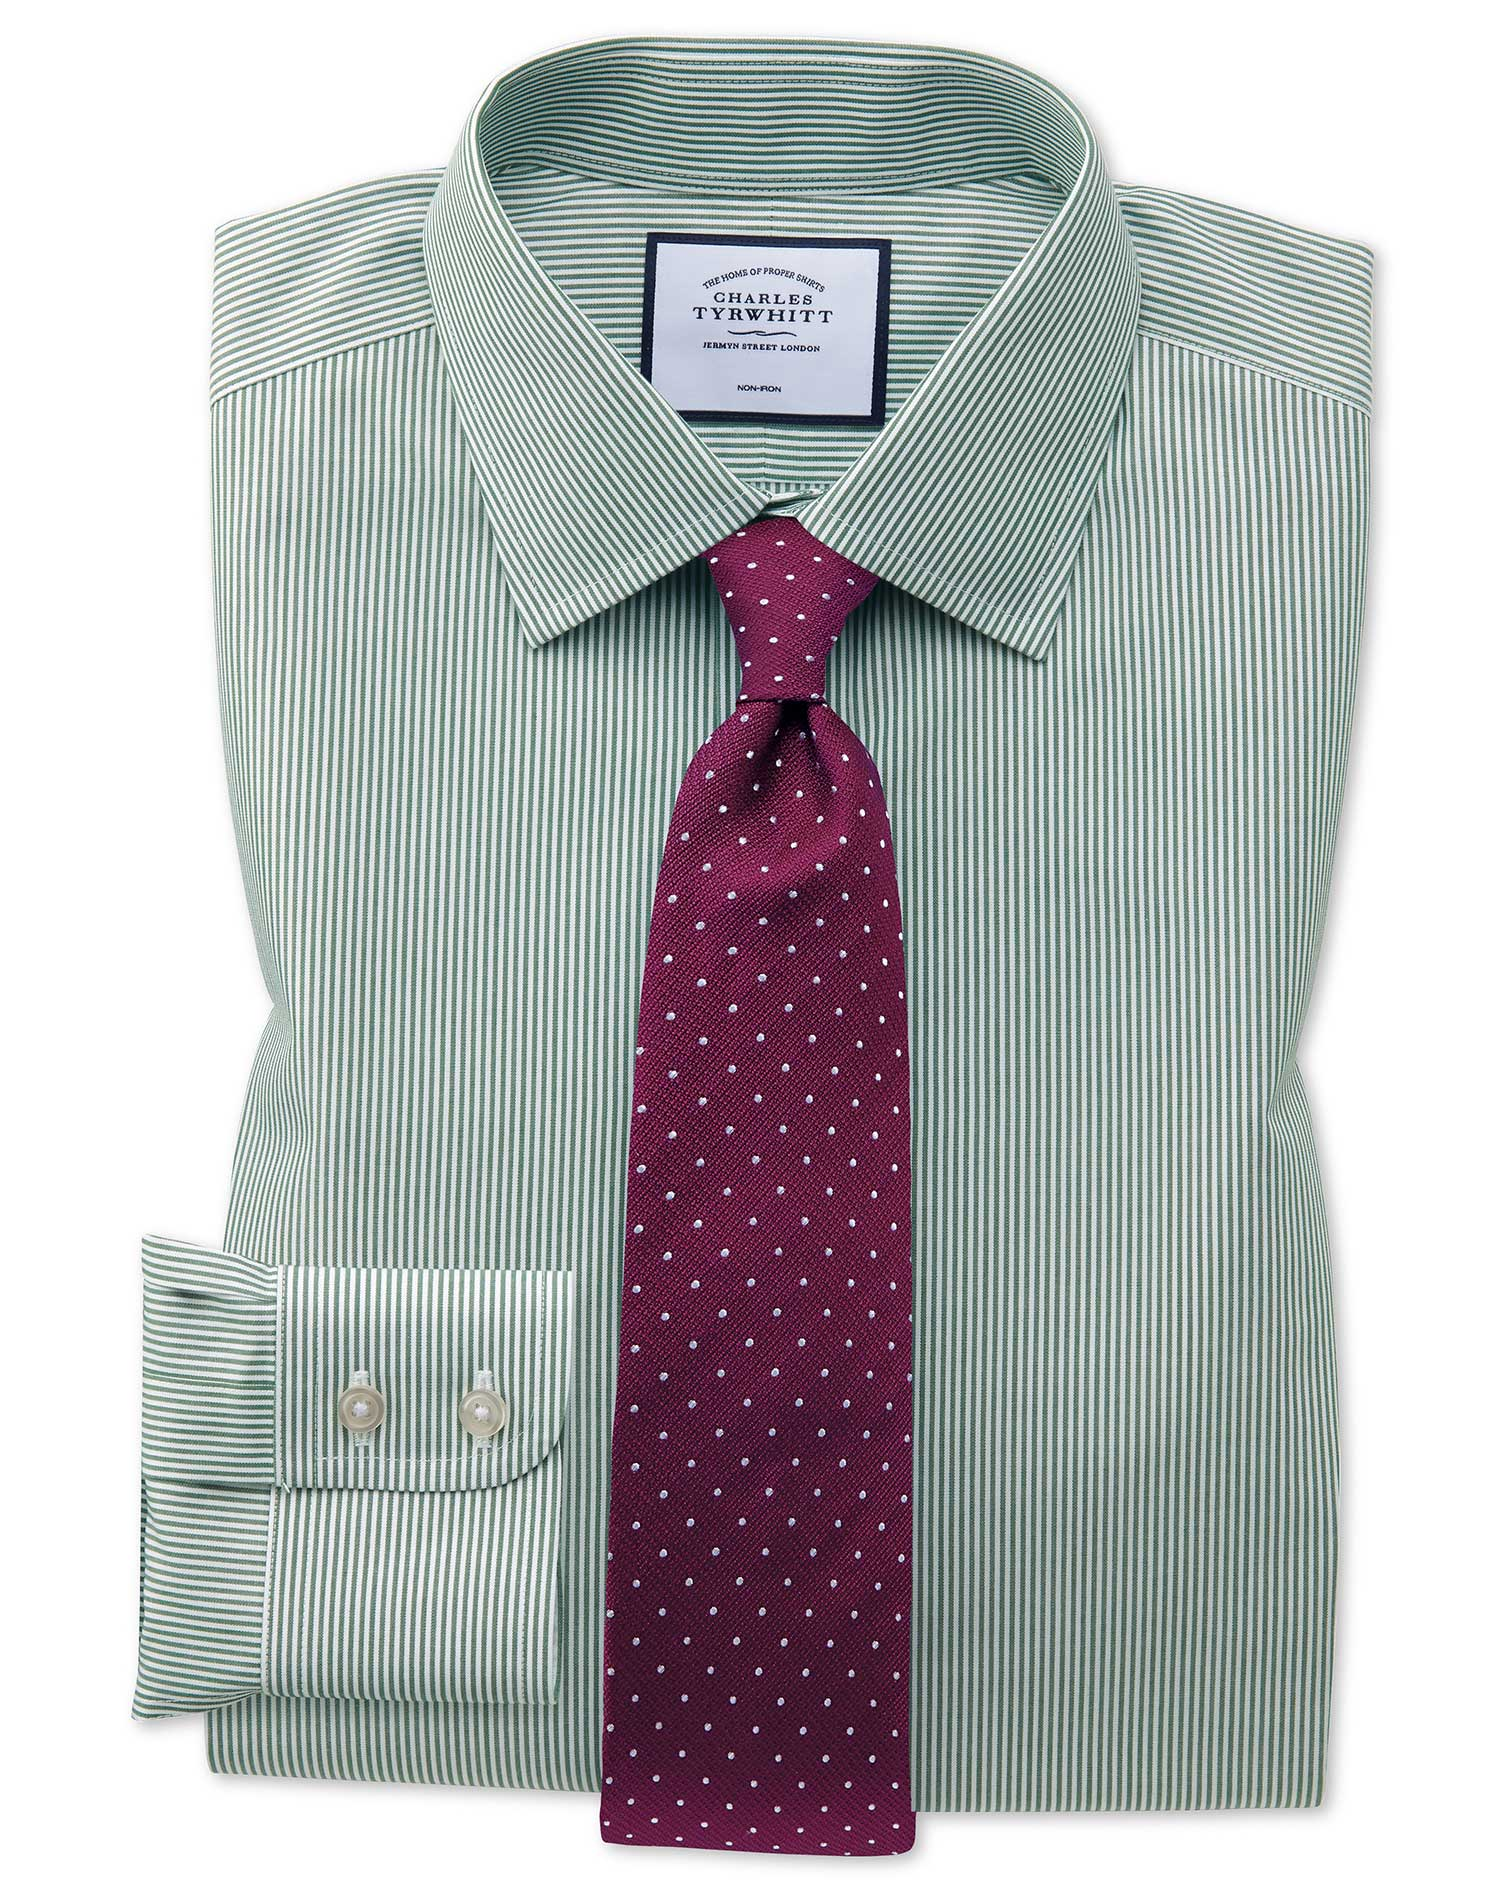 Classic Fit Non-Iron Olive Bengal Stripe Cotton Formal Shirt Double Cuff Size 16.5/34 by Charles Tyr